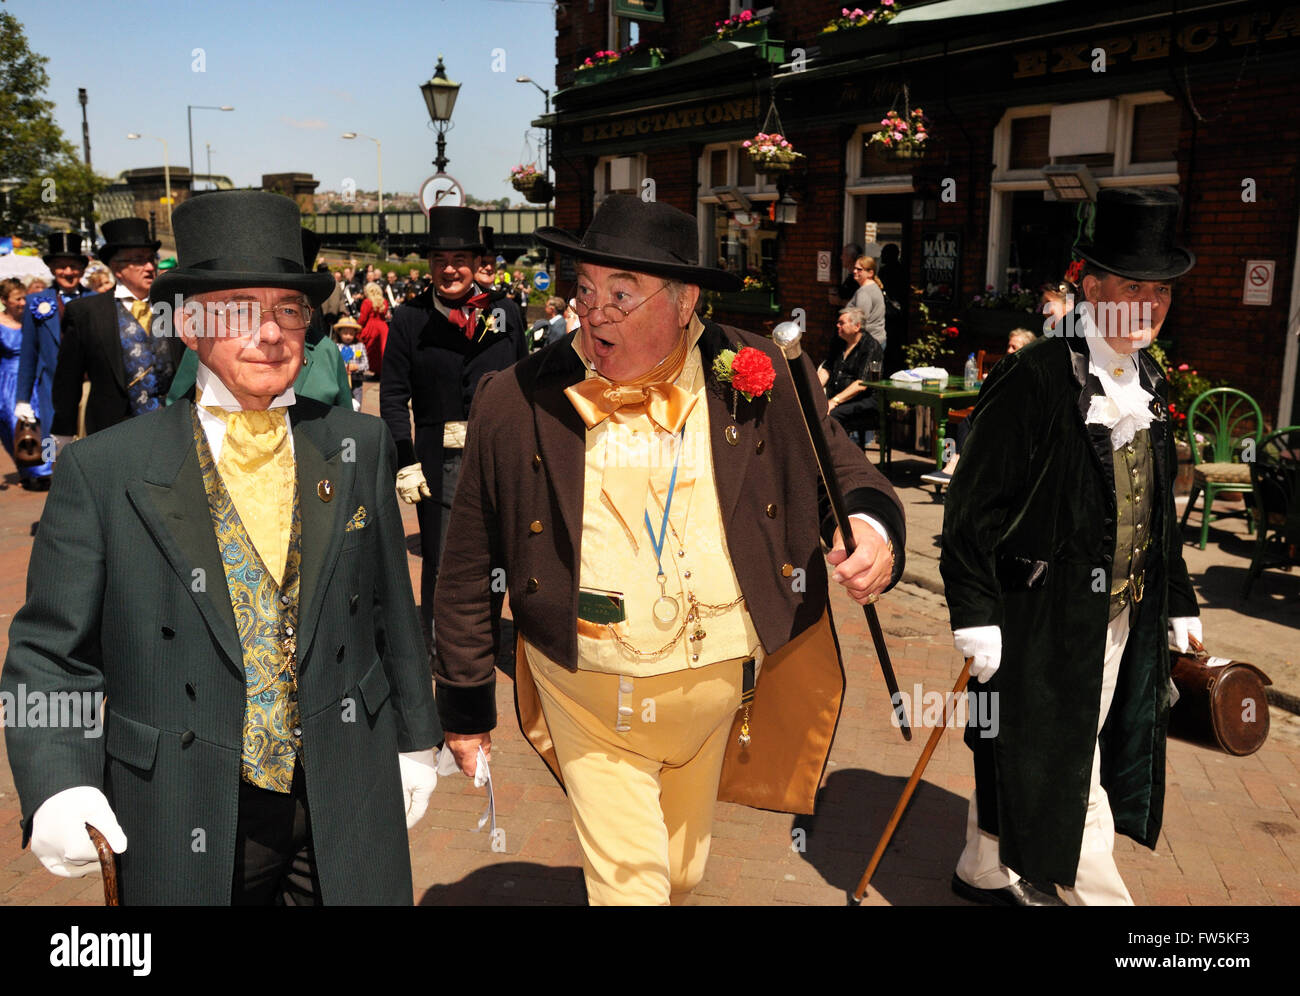 Dickens Festival - three gentlemen in Victorian costume, from the City of Rochester Pickwick Club, Rochester Dickens - Stock Image